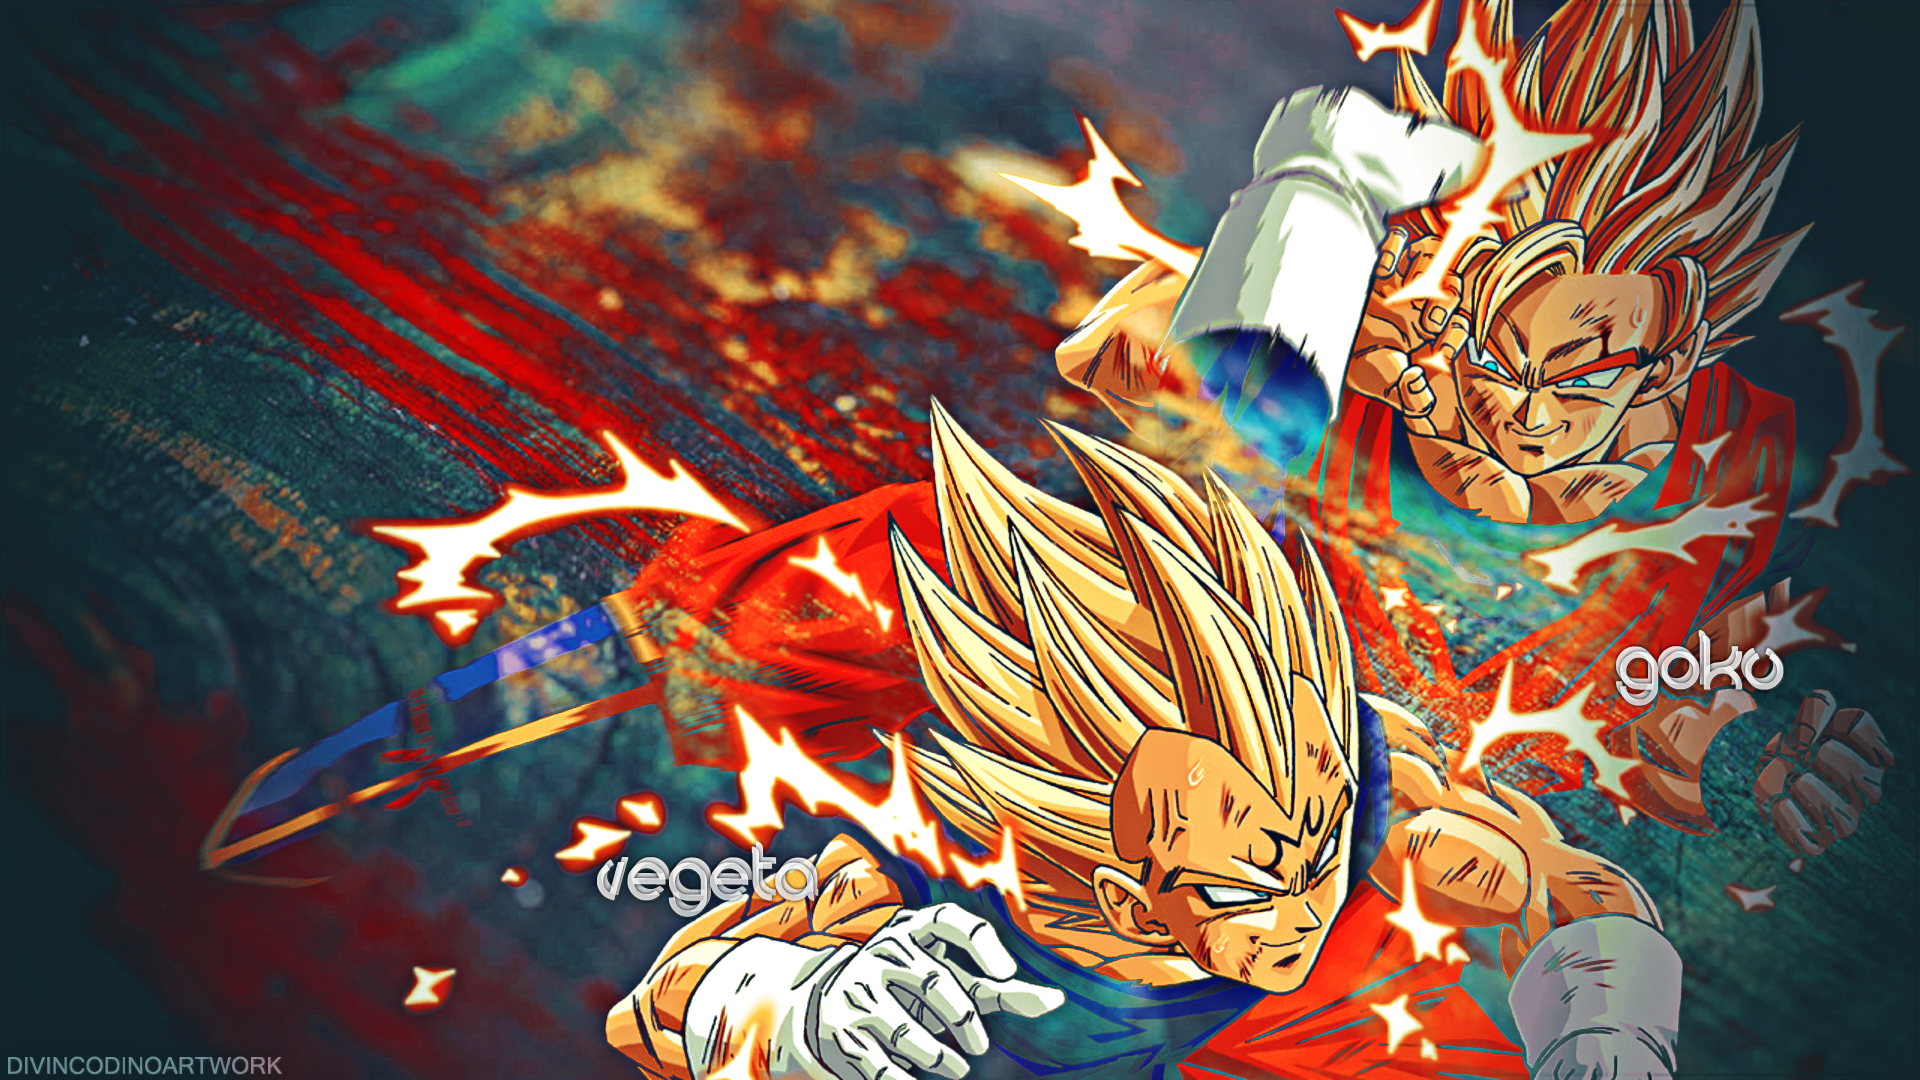 dragon ball z vegeta and goku hd wallpapers | anime | pinterest